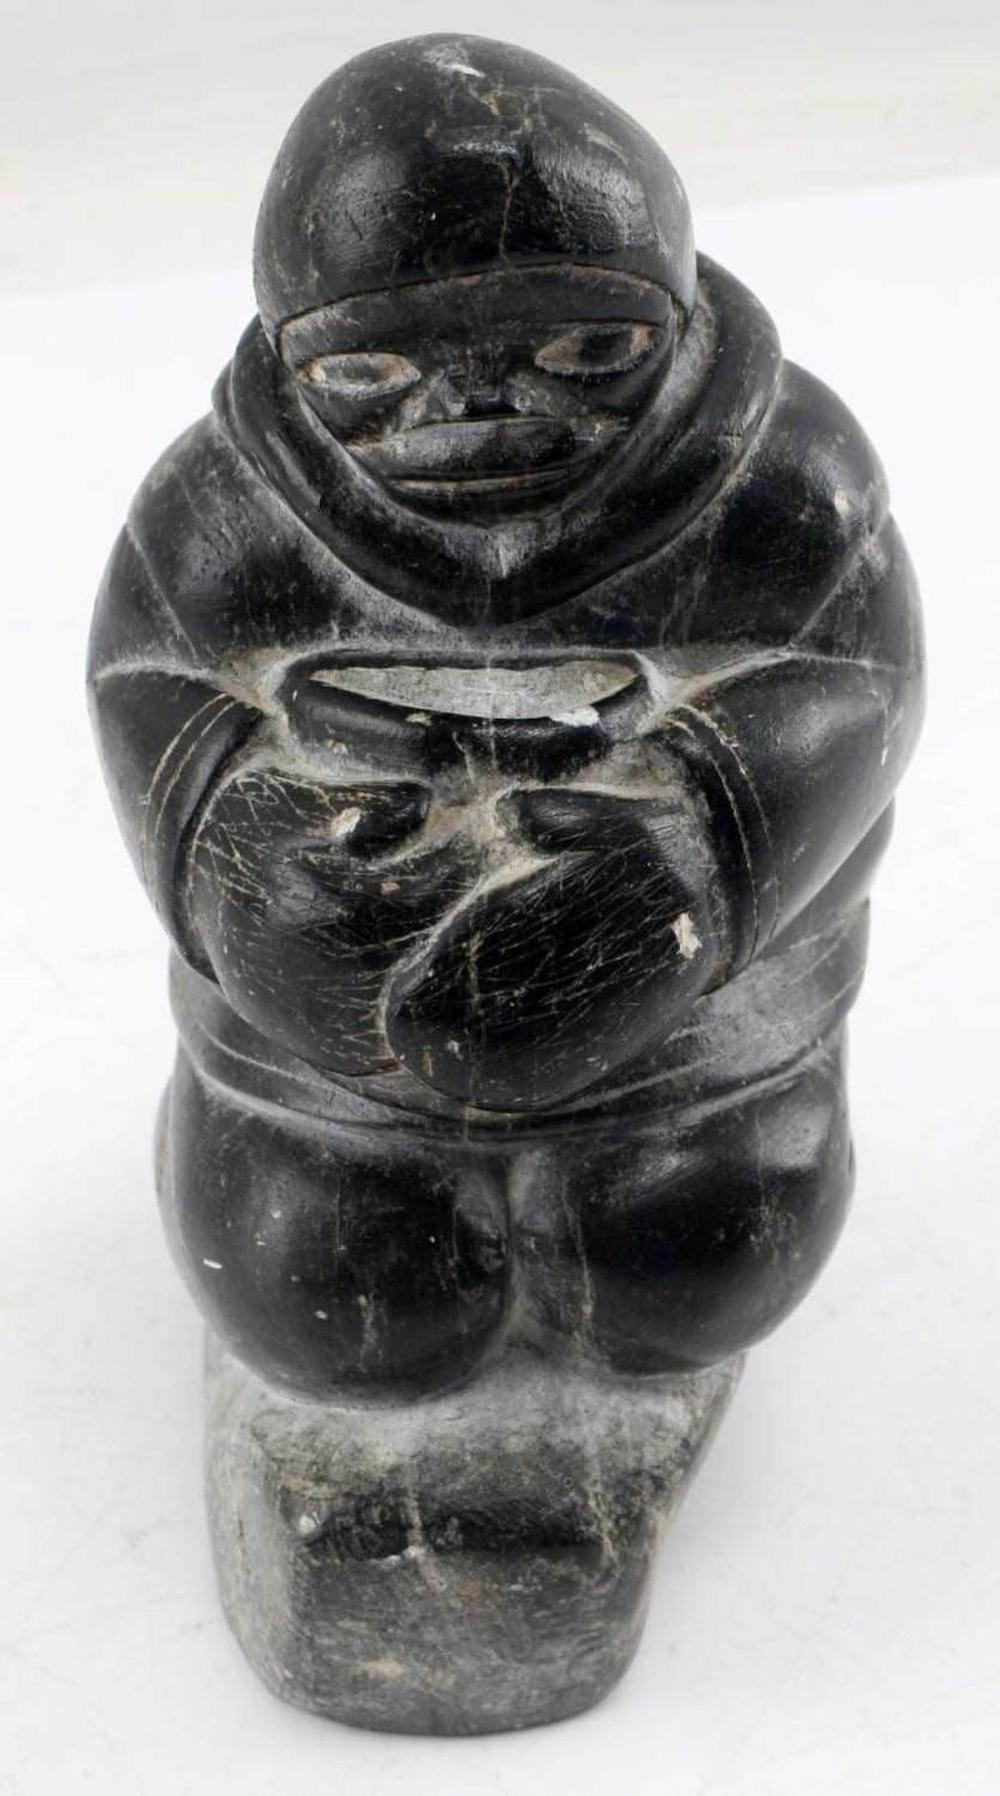 INUIT SOAPSTONE CARVING OF MALE FIGURE